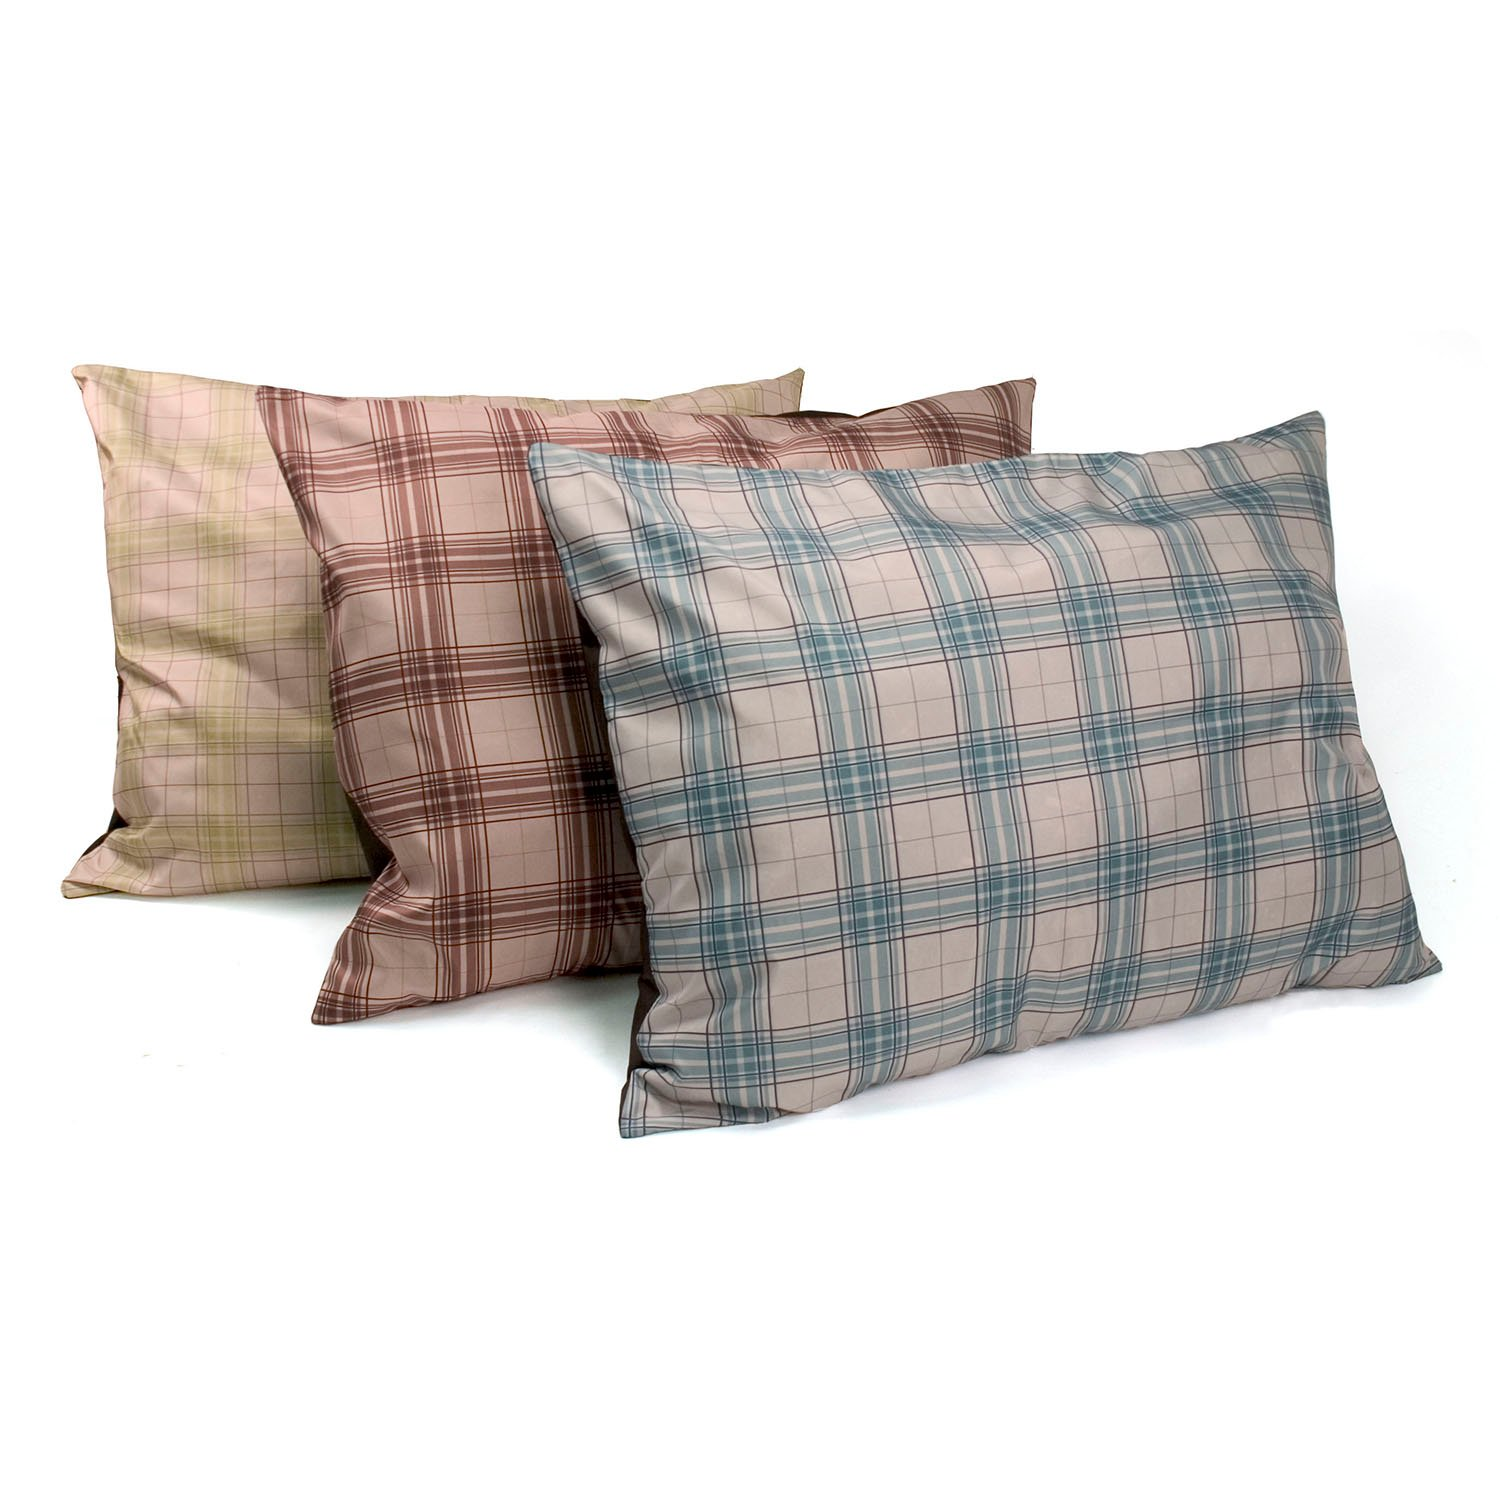 Dallas Manufacturing Dog Bed 3 Pack in Window Pane Plaid